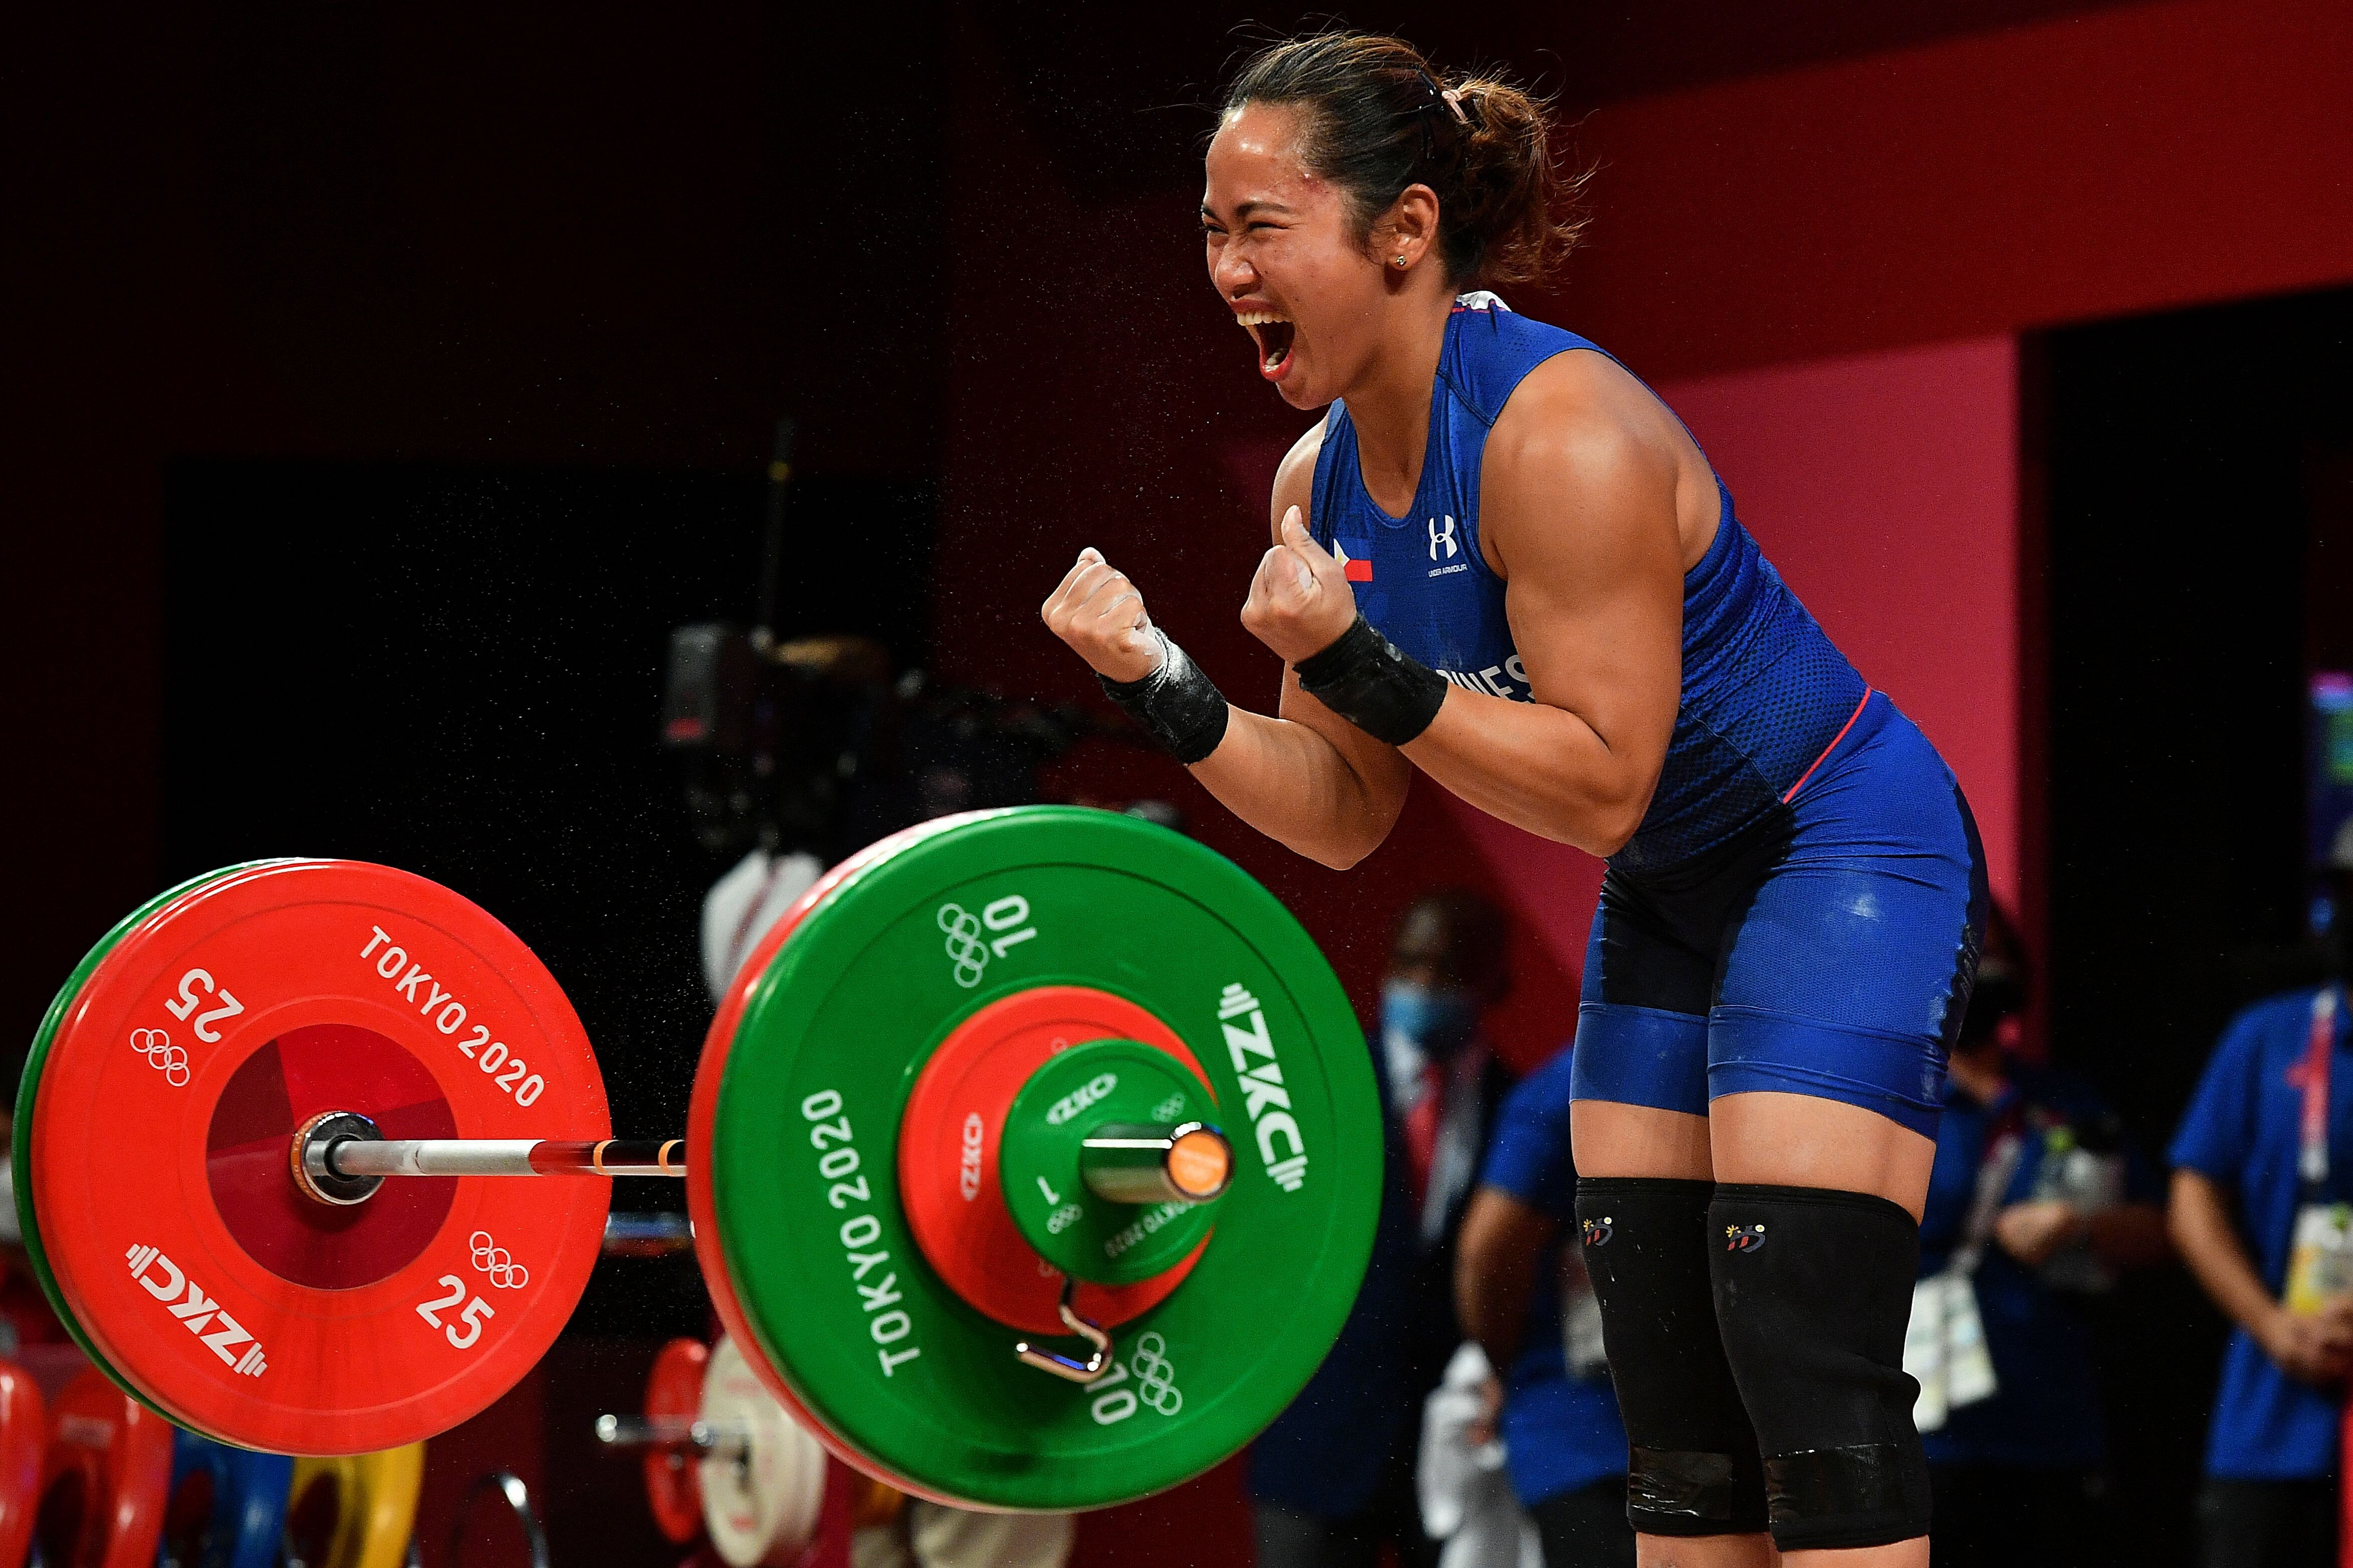 Hidilyn Diaz wins Philippines' first Olympic gold medal with weightlifting